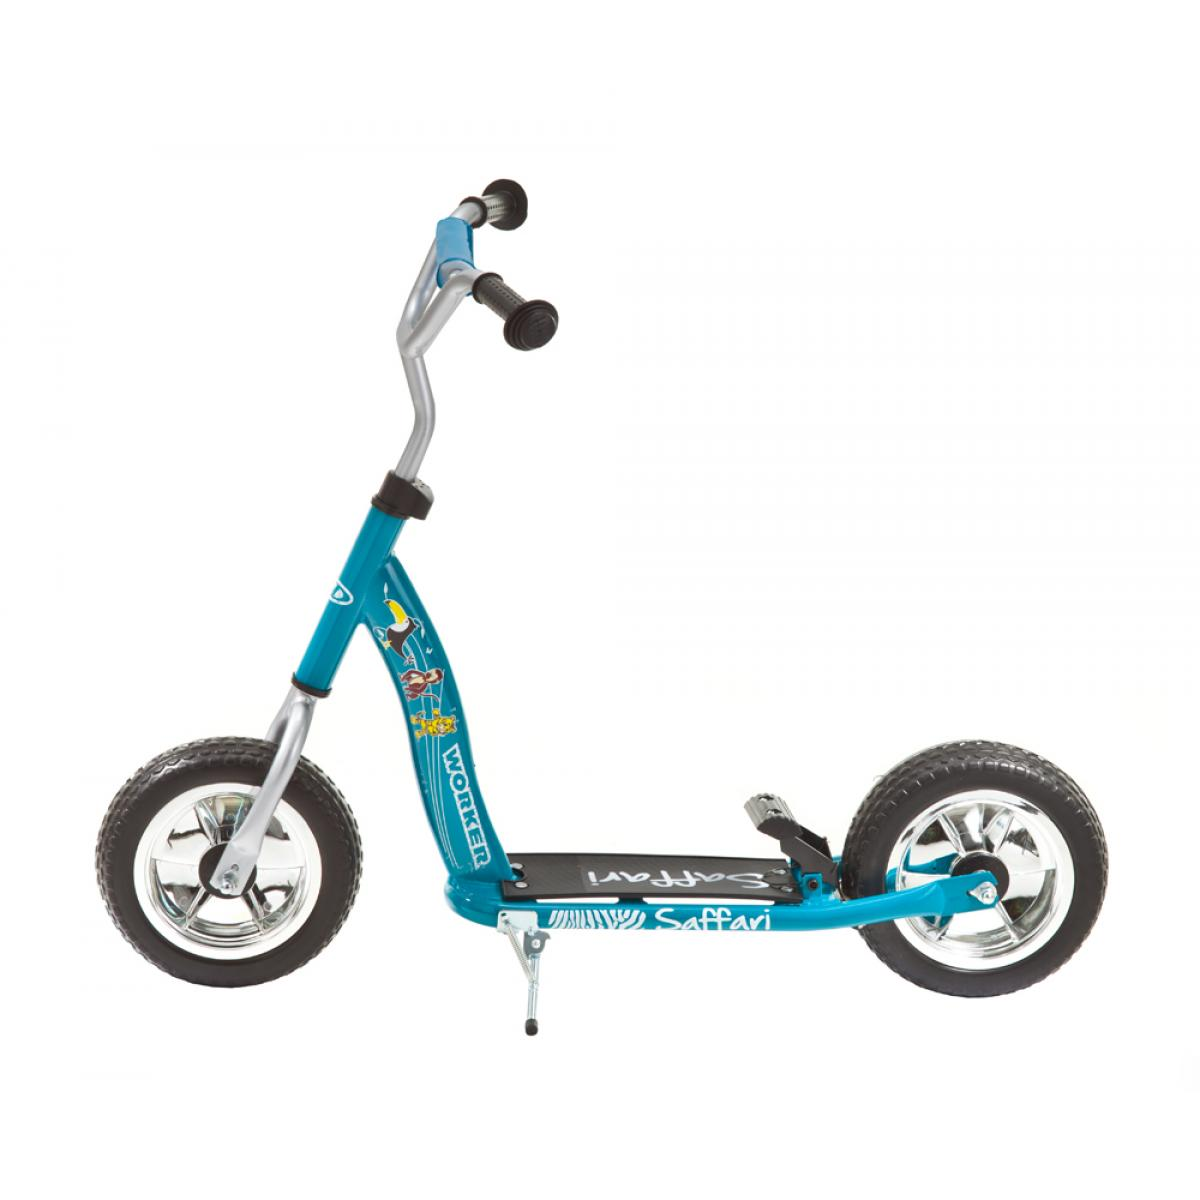 kinderroller 10 zoll saffari 100 blau scooter mit bremse. Black Bedroom Furniture Sets. Home Design Ideas